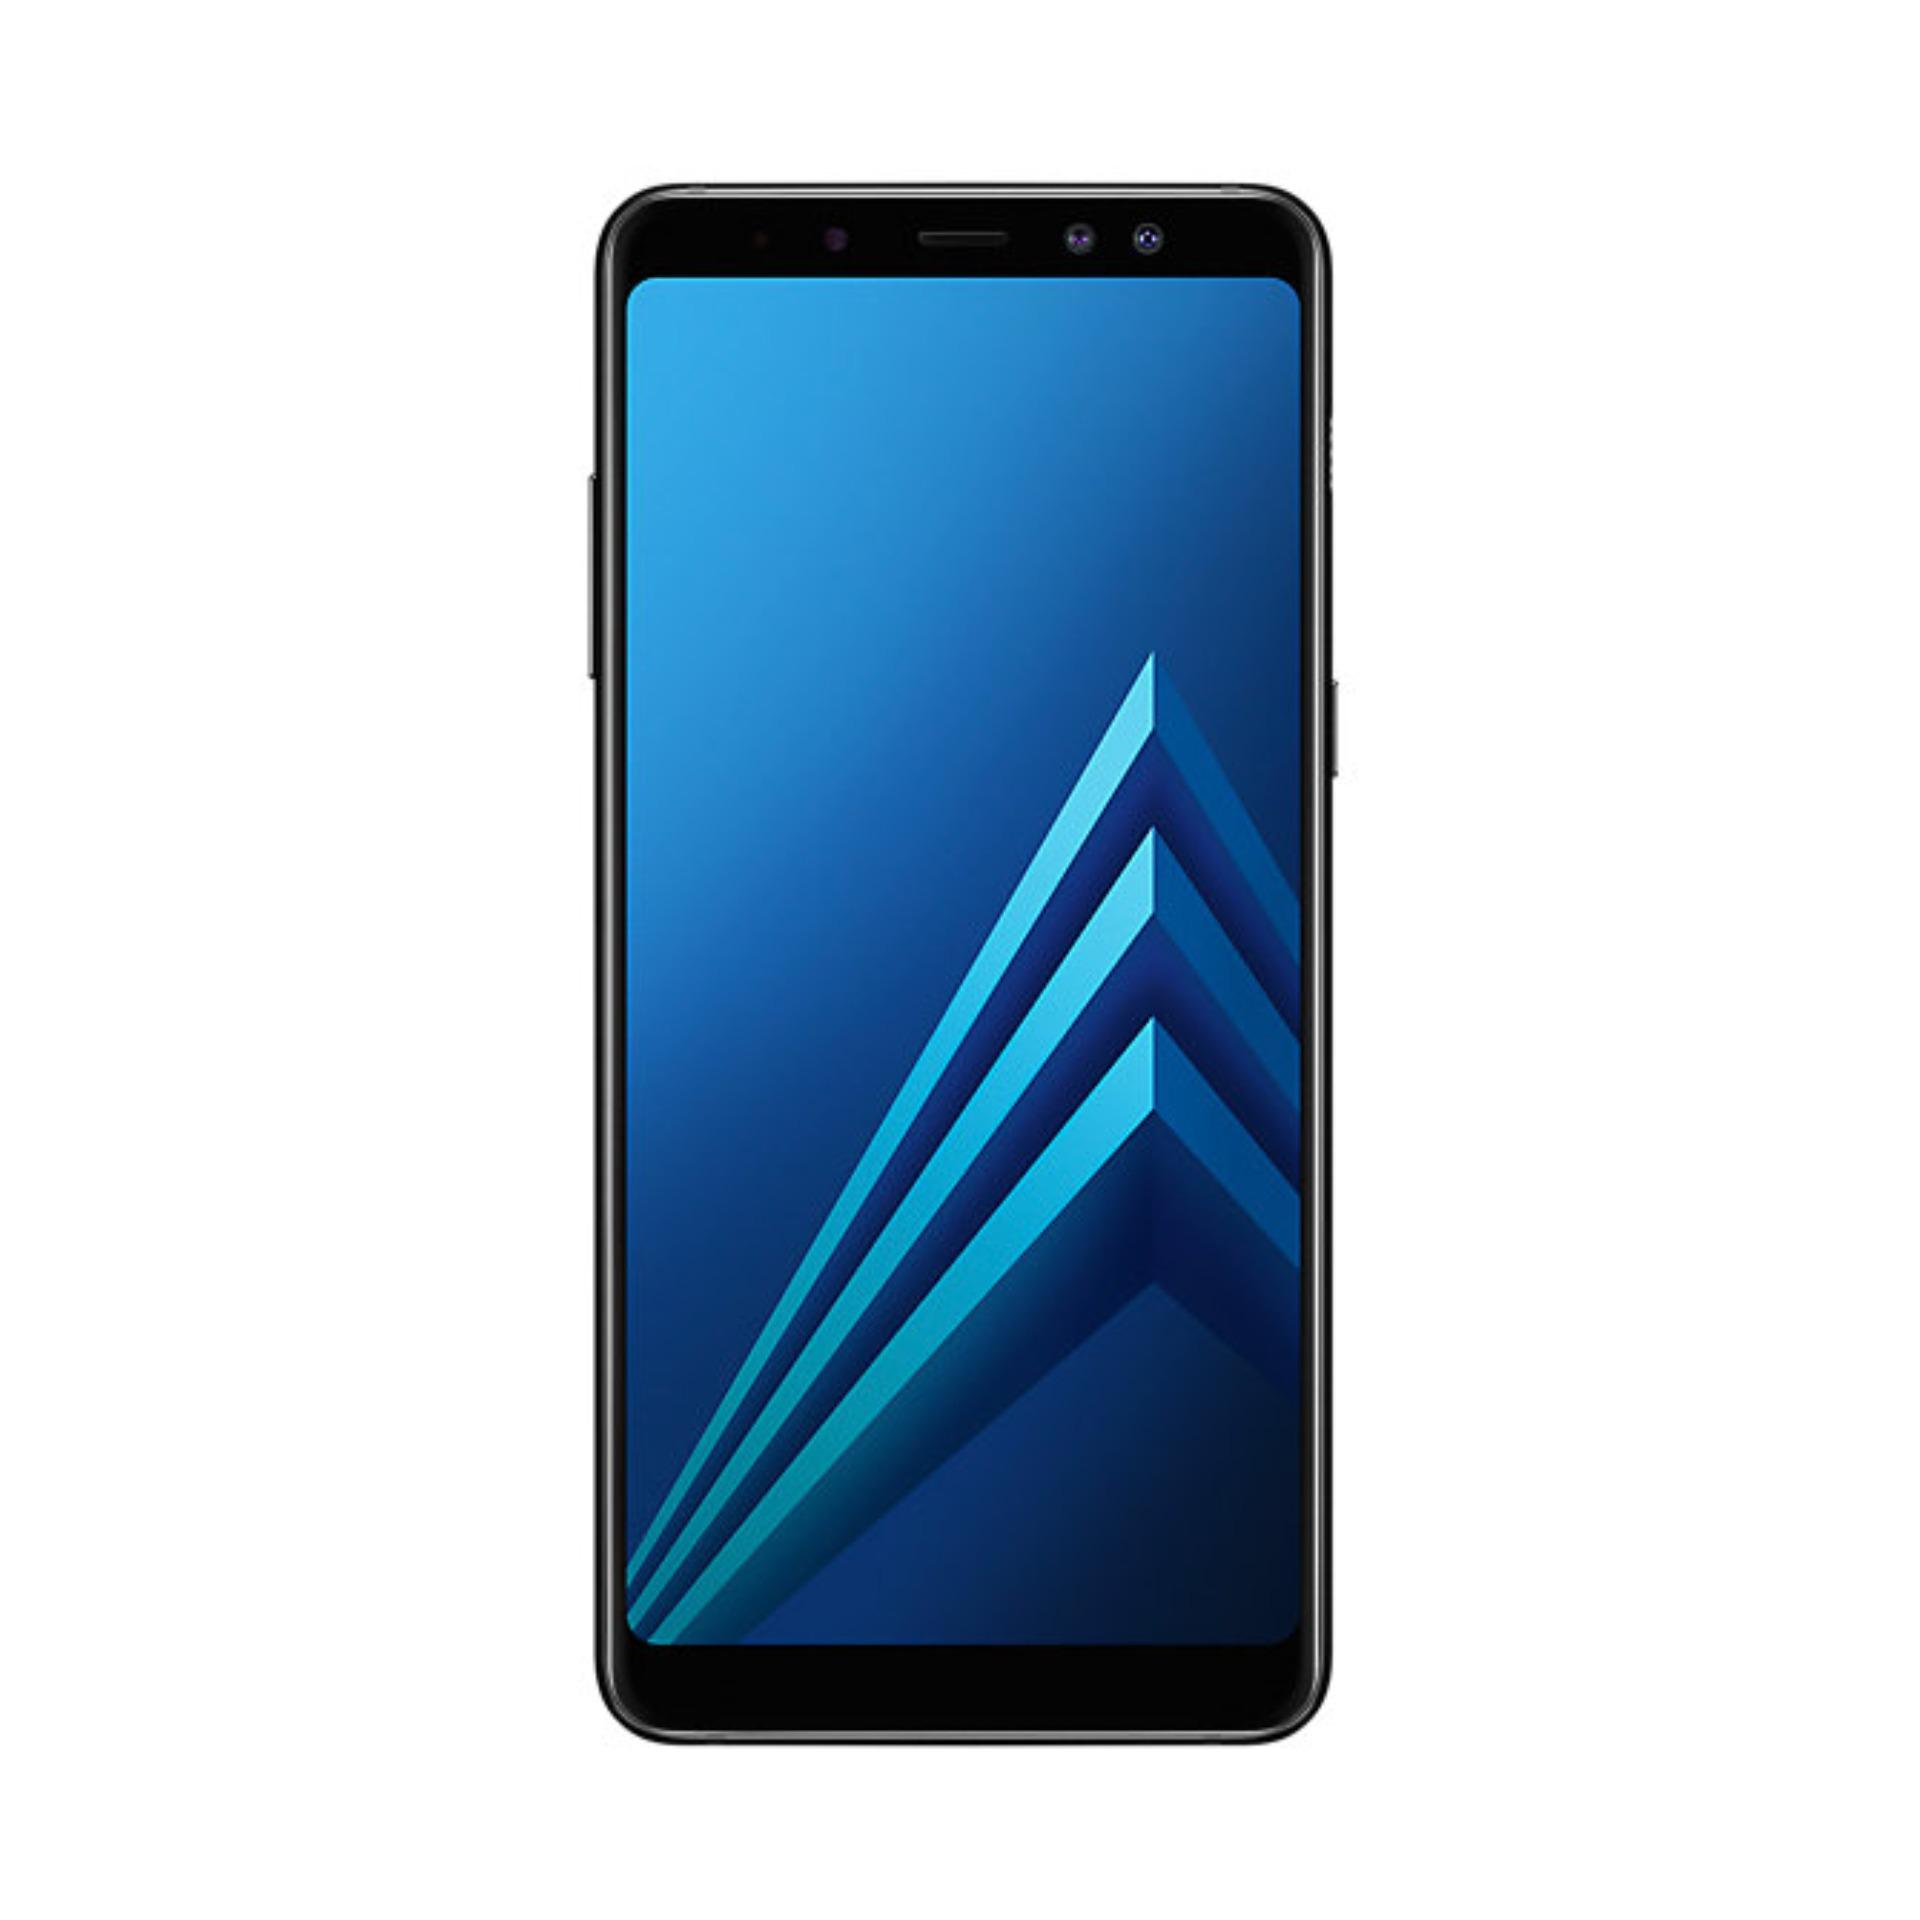 Samsung Galaxy A8 Plus 2018 - 6/64 GB - 4G LTE - Black